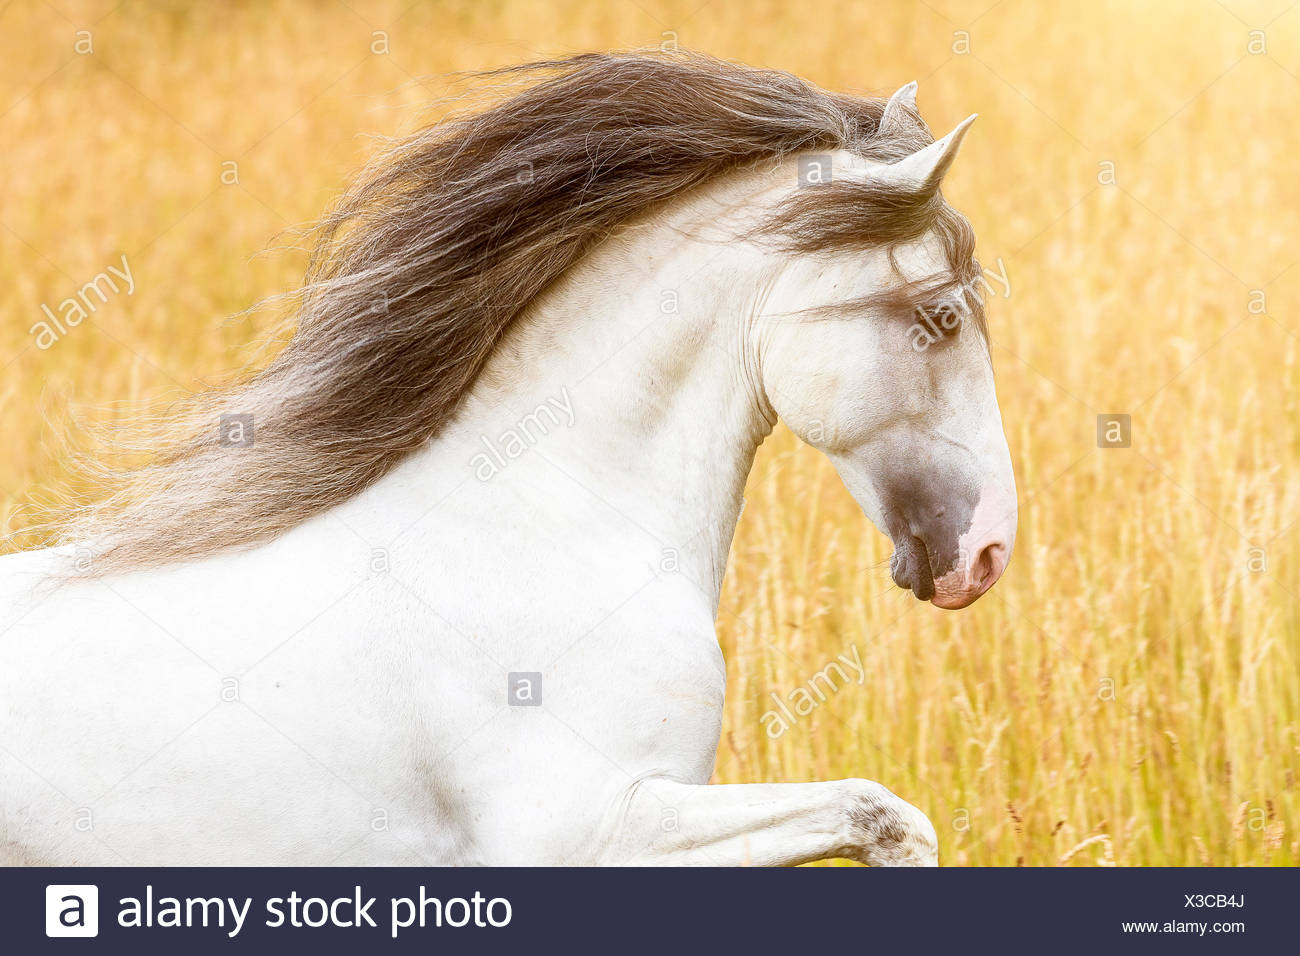 Lusitano. Portrait of gray stallion with mane flowing. Germany - Stock Image